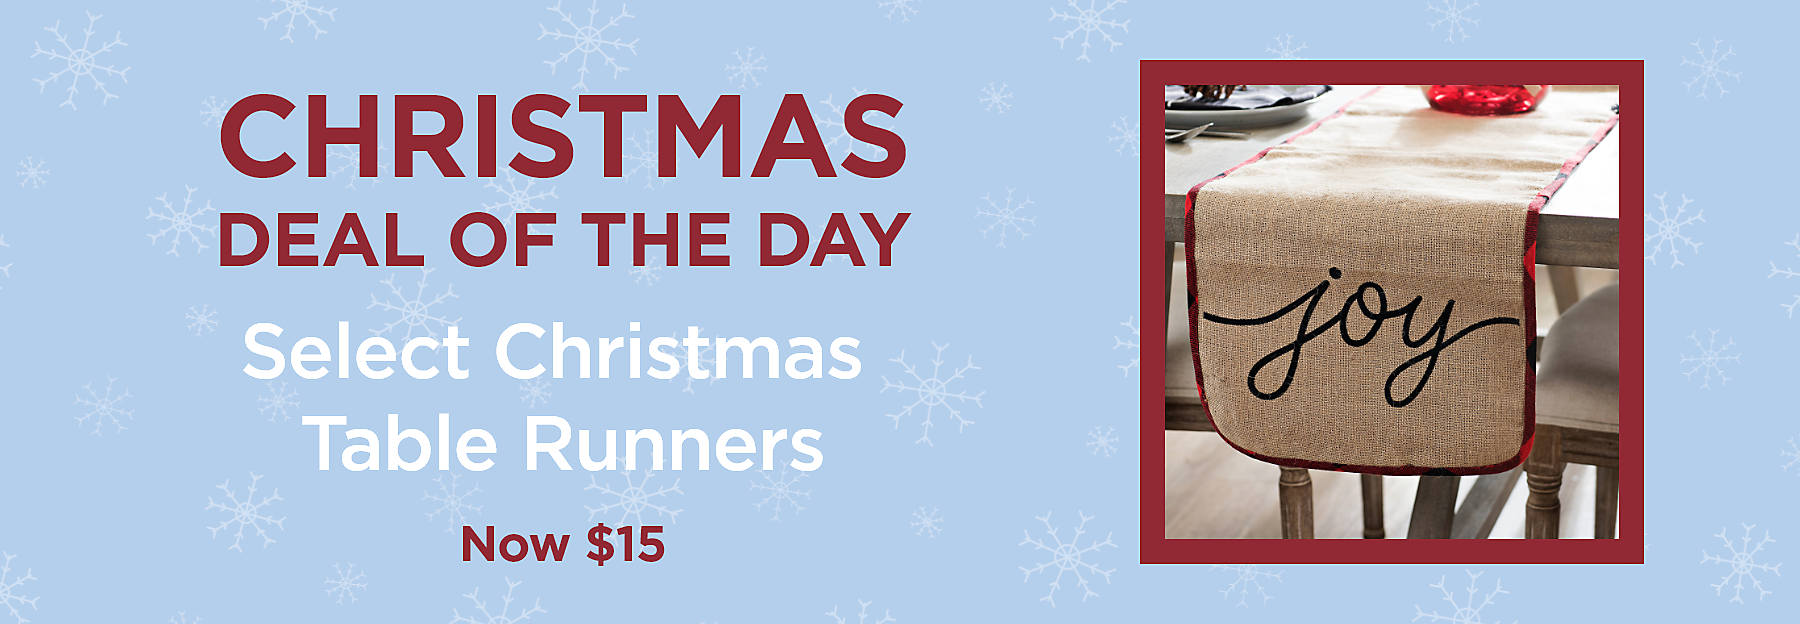 Christmas Deal of the Day Select Christmas Table Runners Now $15